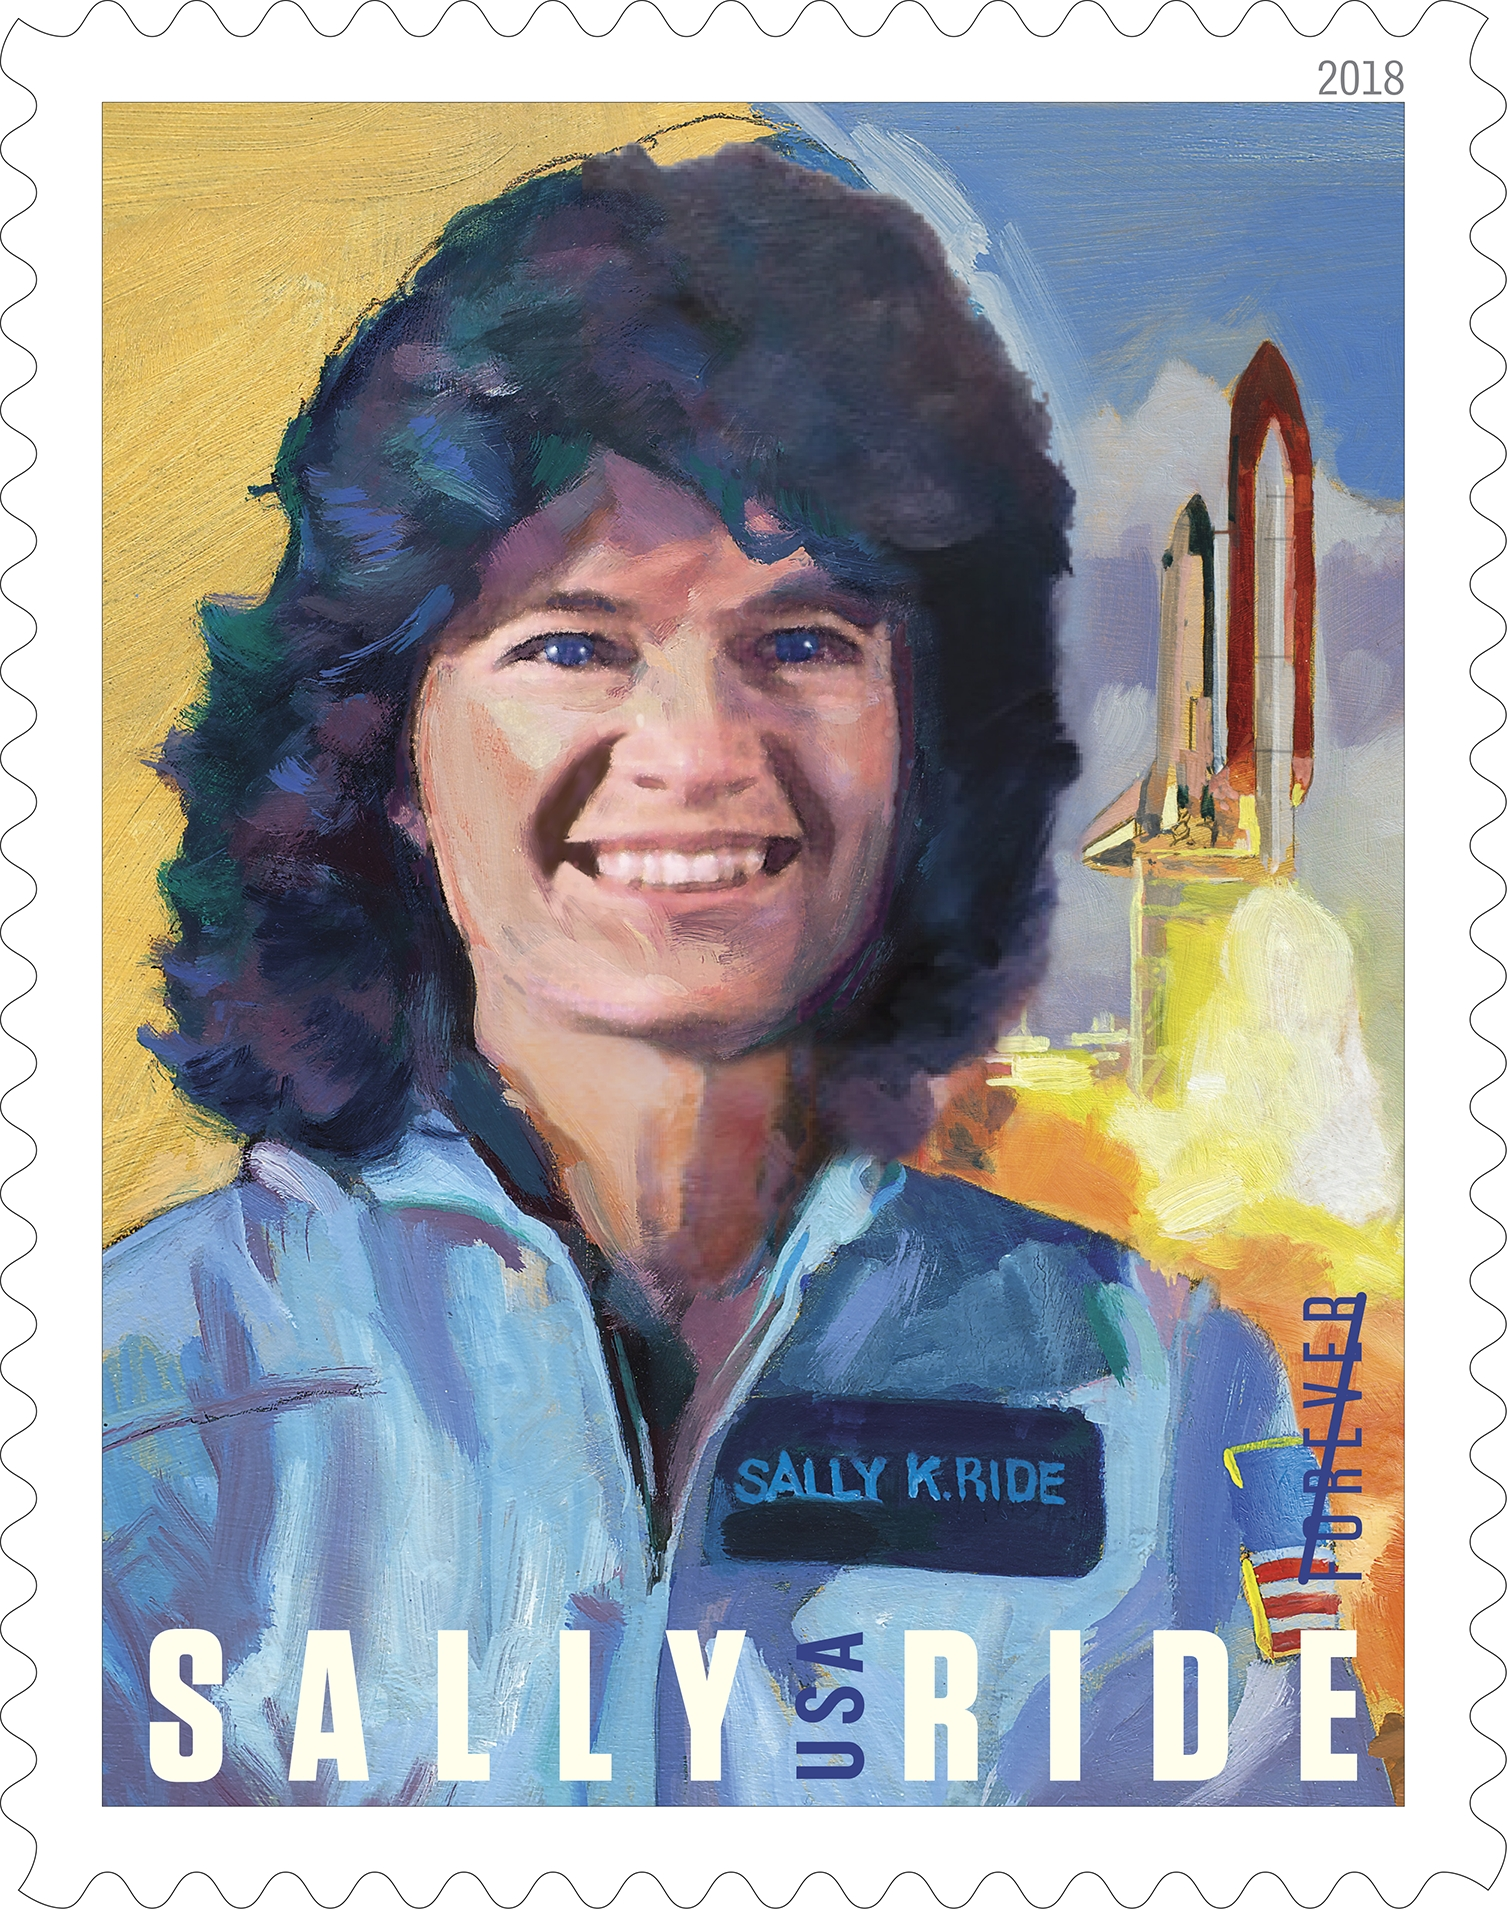 Sally Ride: America's first woman in space, Sally Ride (1951–2012), inspired the nation as a pioneering astronaut, brilliant physicist and dedicated educator. (USPS)